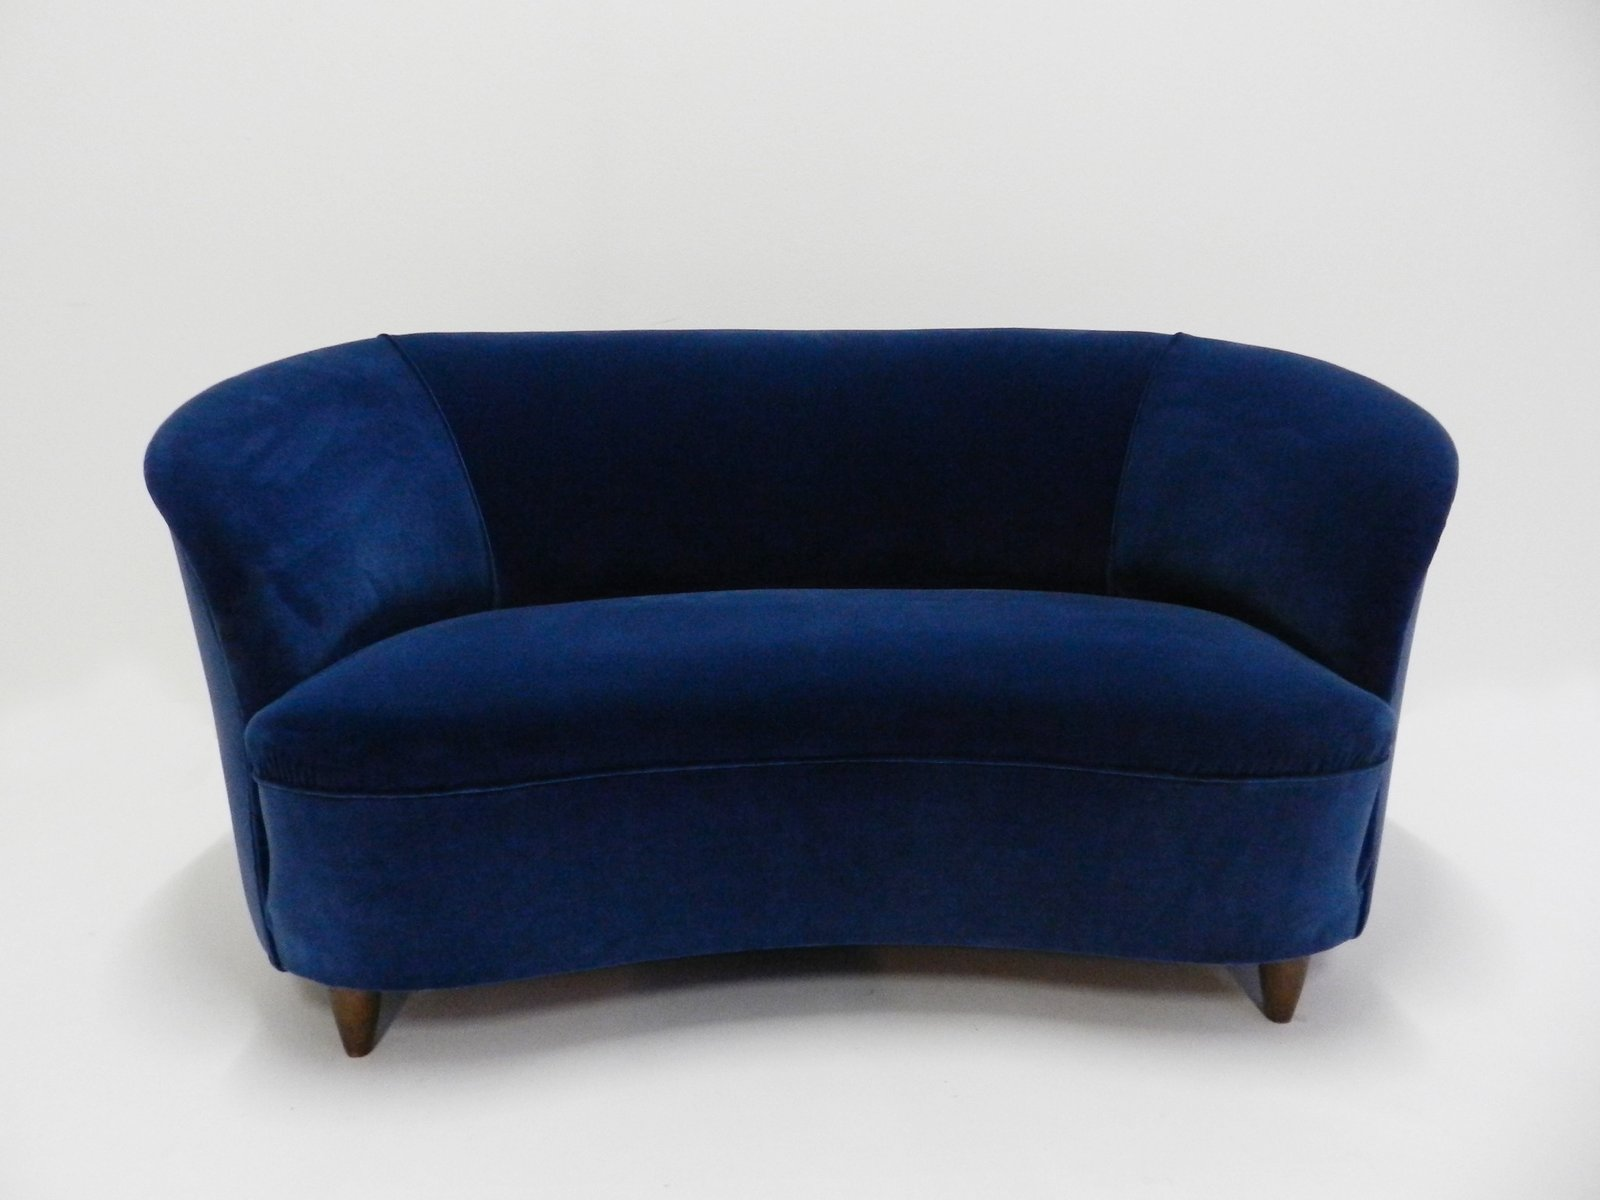 Italian MidCentury Blue Velvet Curved Loveseat for sale at Pamono